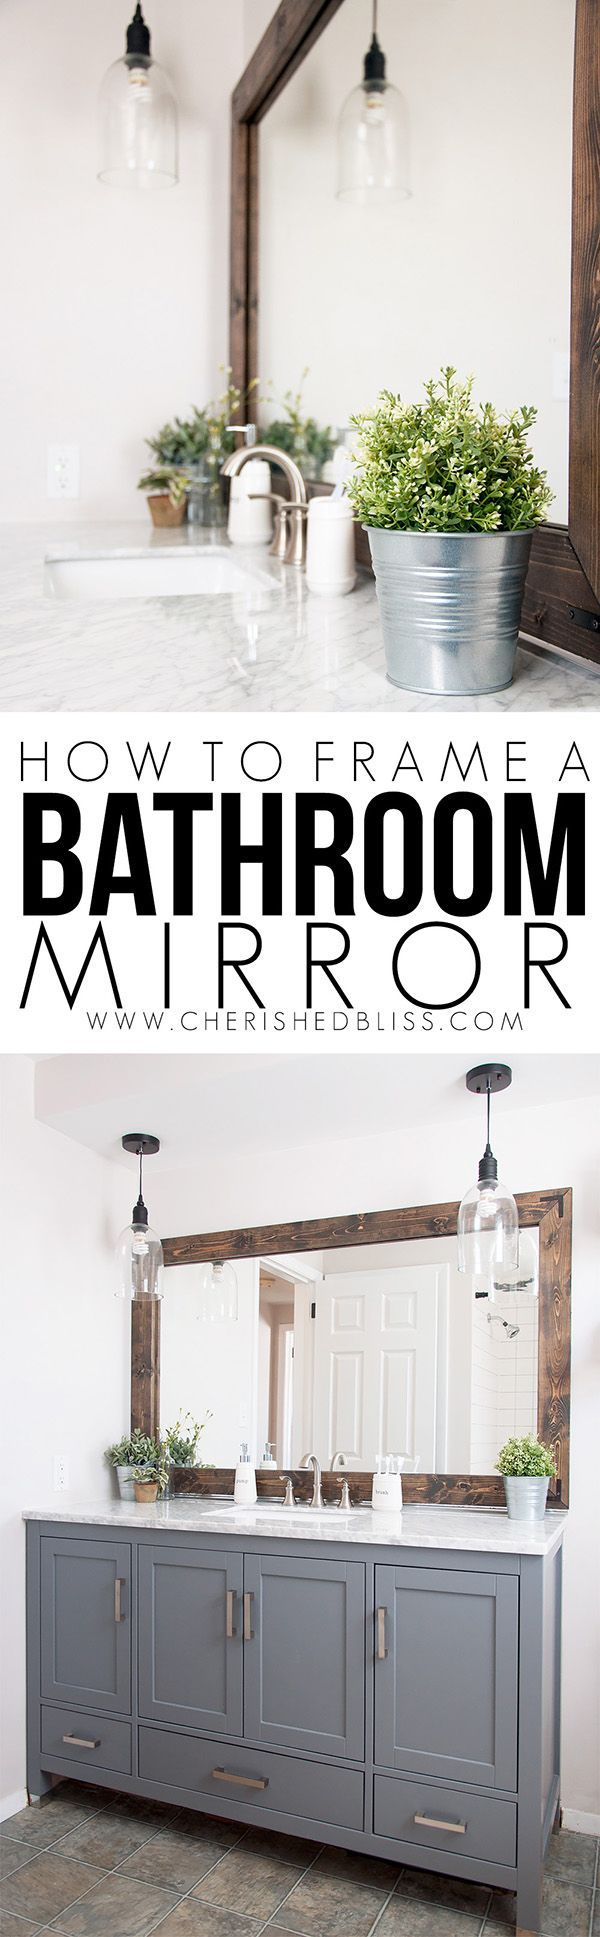 Bathroom decor ideas diy - What S New In The World Of Farmhouse Home Decor Diy And More Page 7 Of